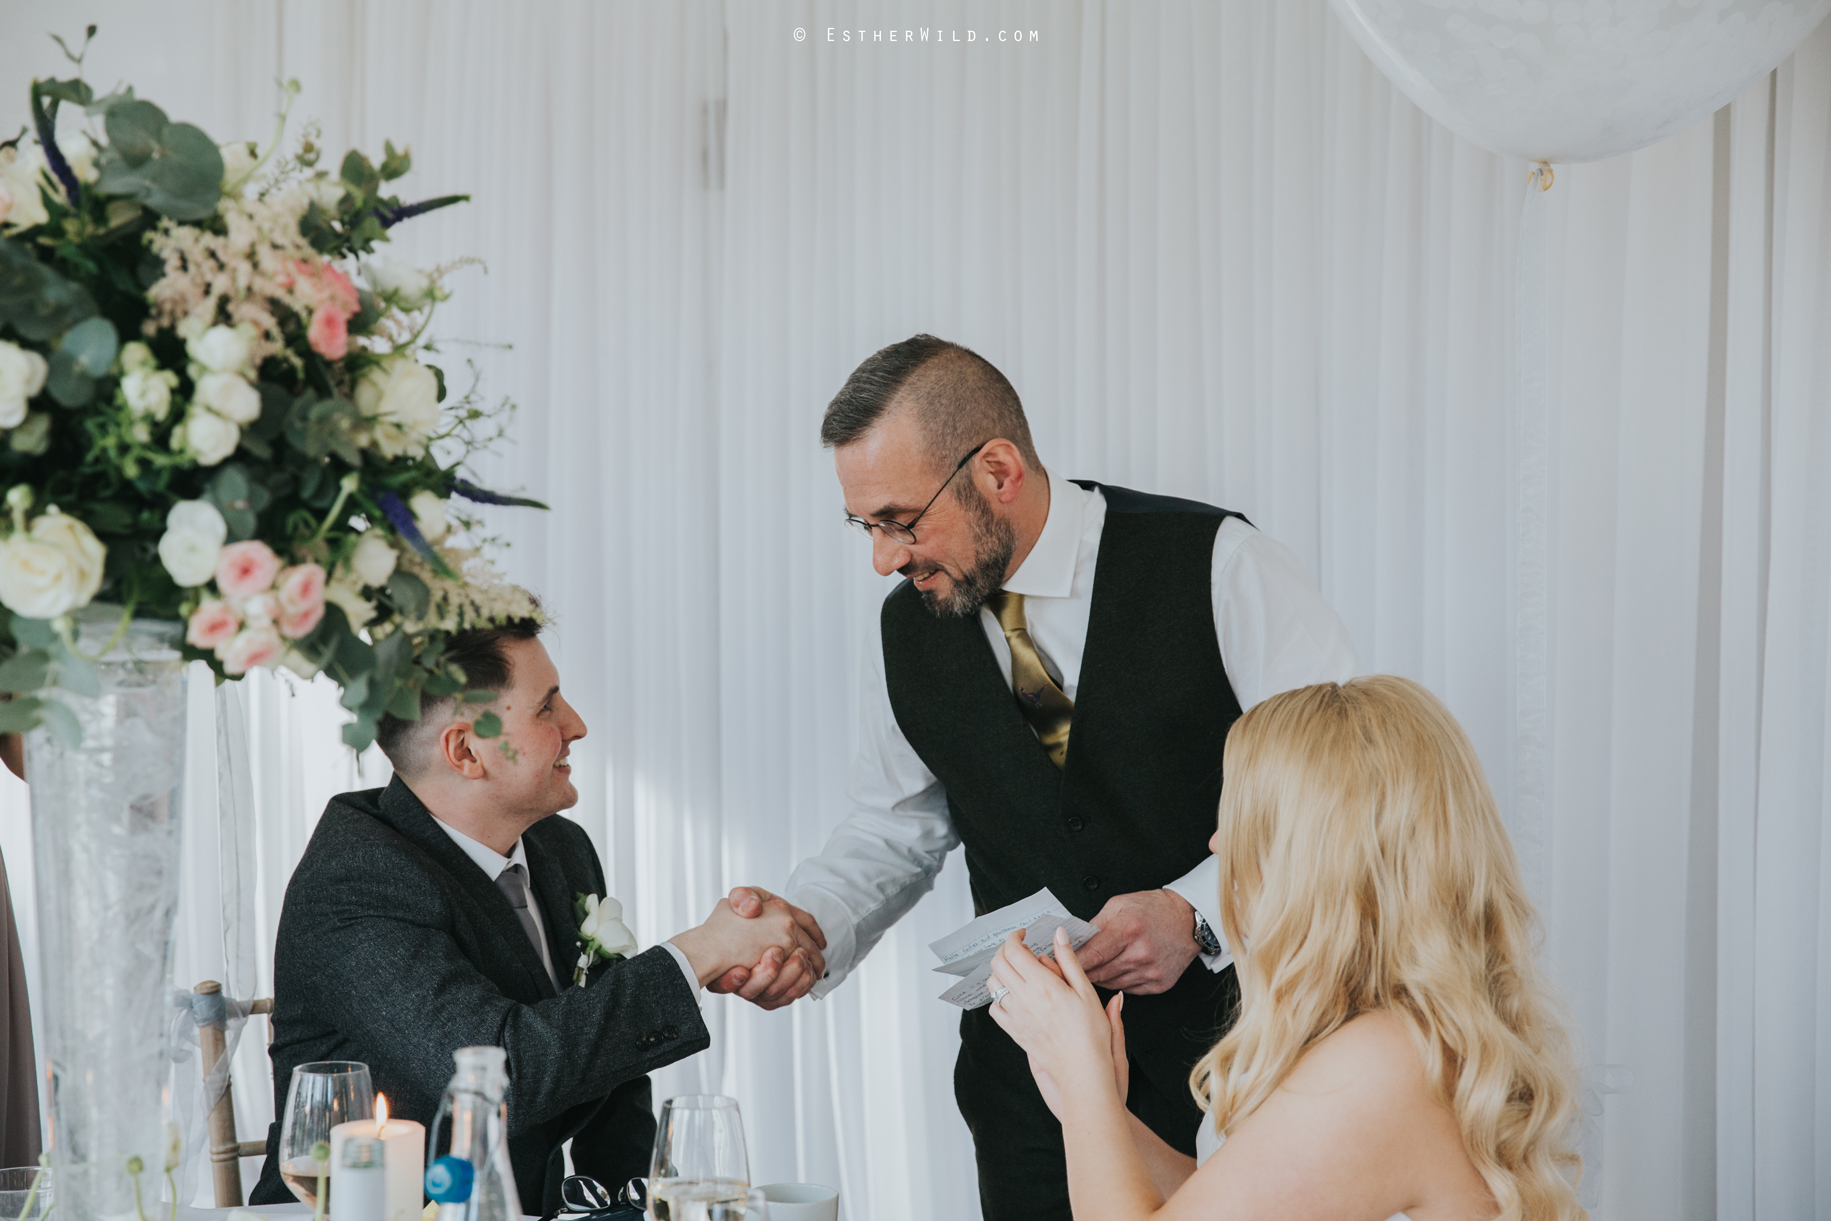 Norfolk_Mead_Hotel_Norwich_Wedding_Copyright_Esther_Wild_Photographer_IMG_2526.jpg